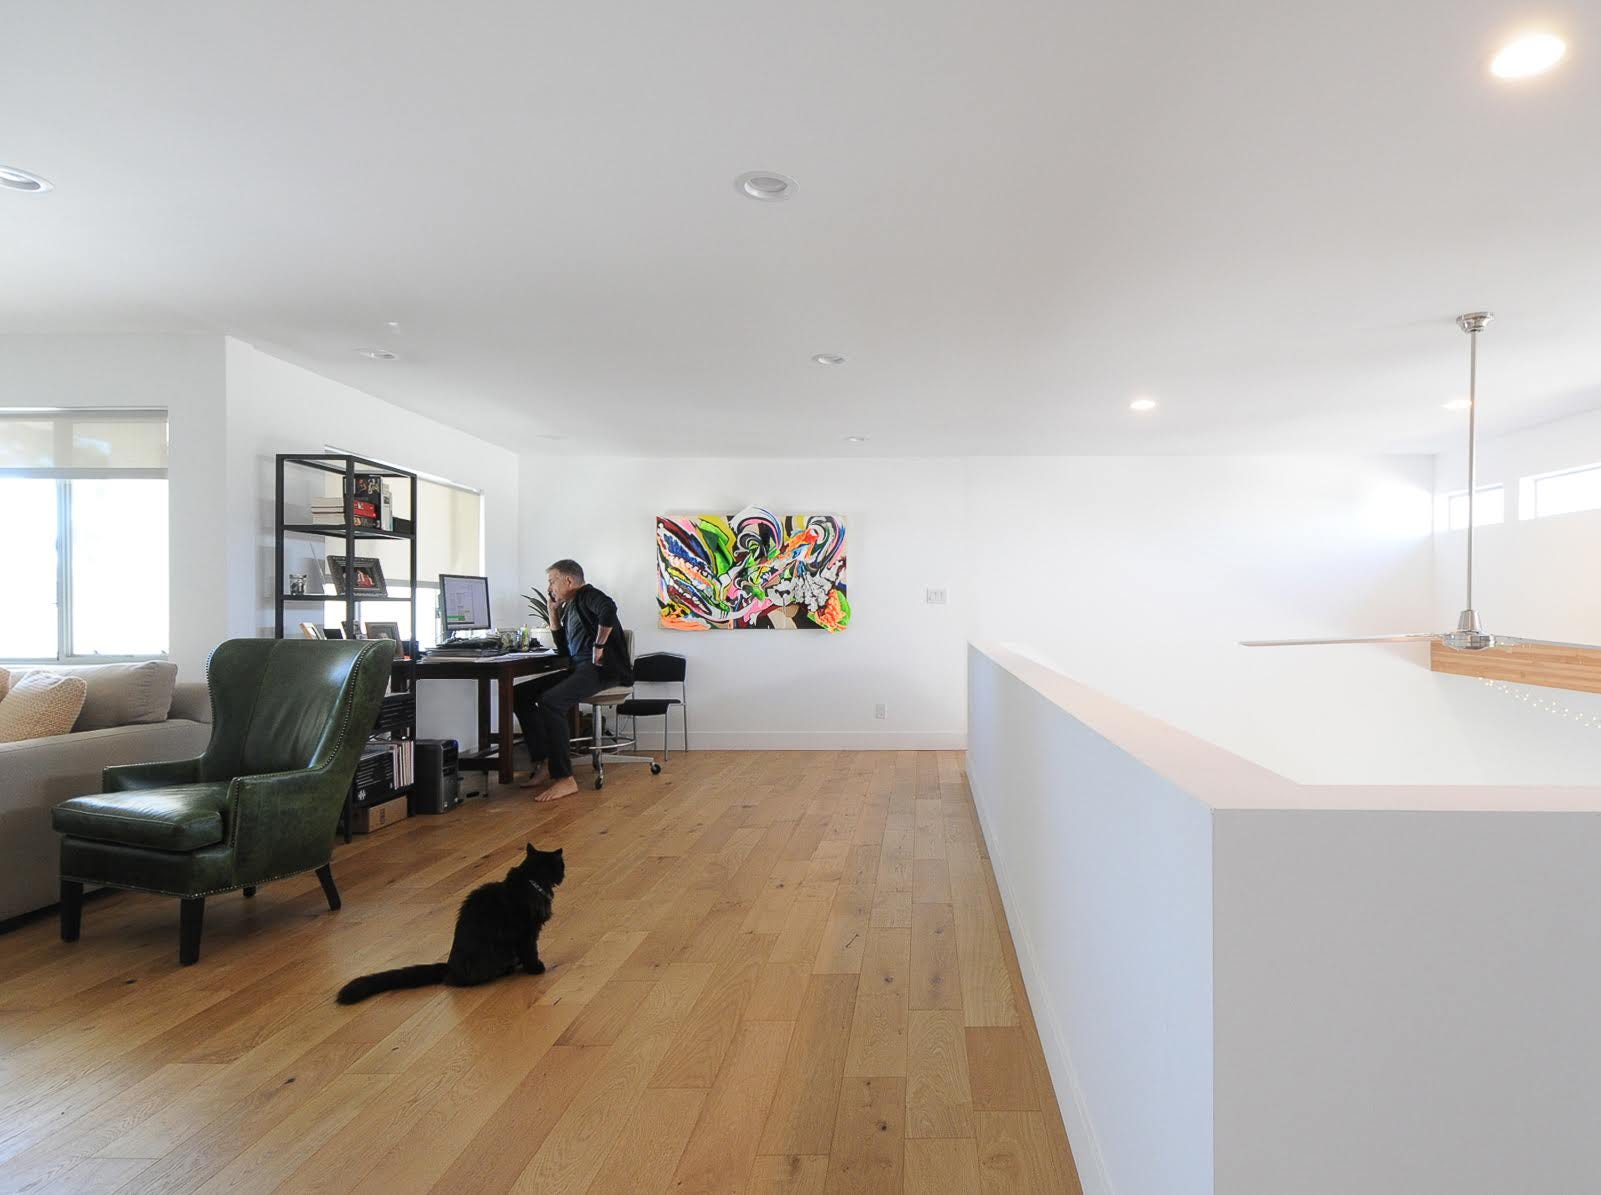 The home's loft area doubles as a home workspace for Kreis.